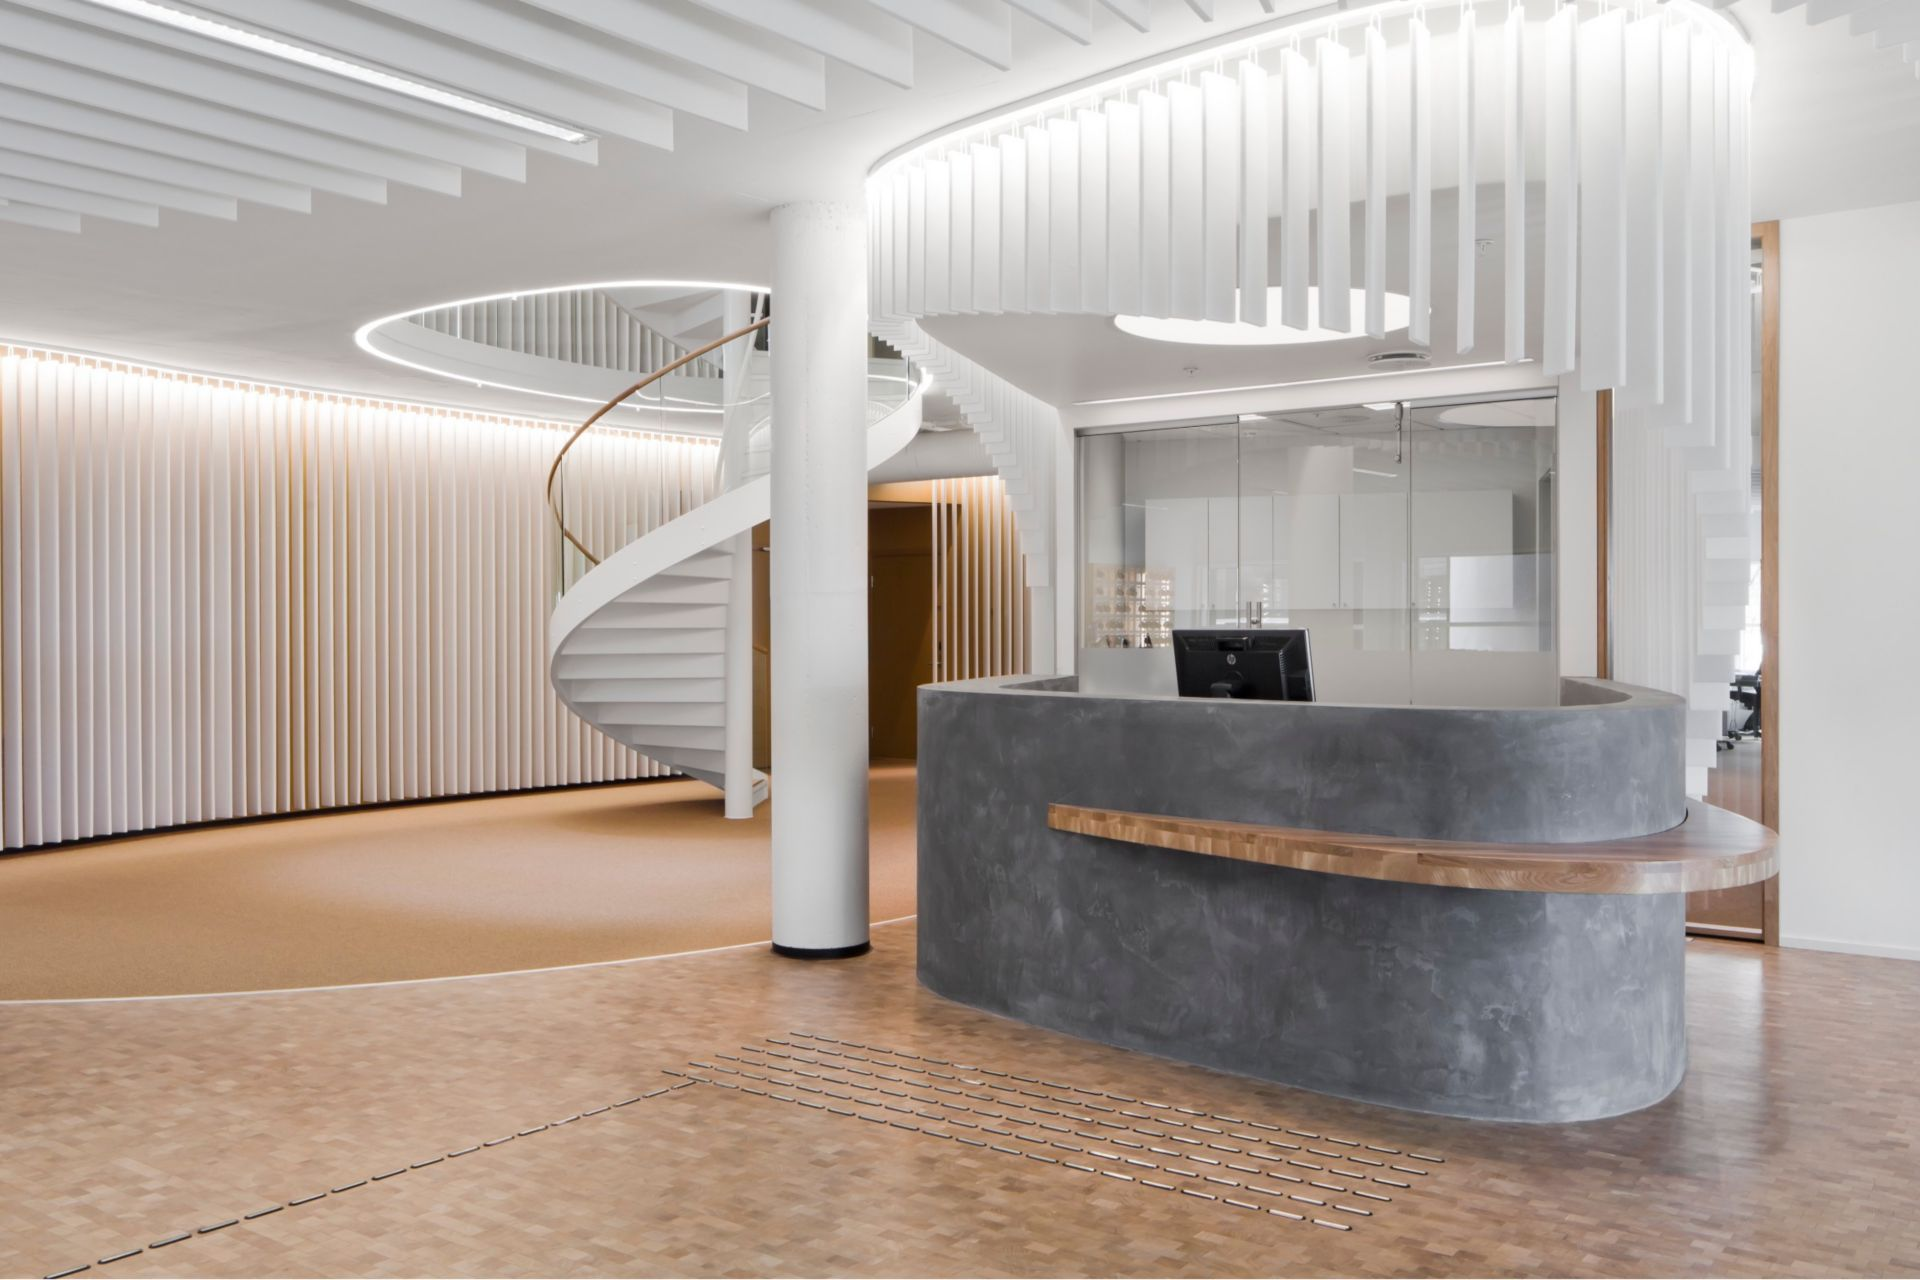 Reception desk in office of Kjorbo powerhouse in Norway